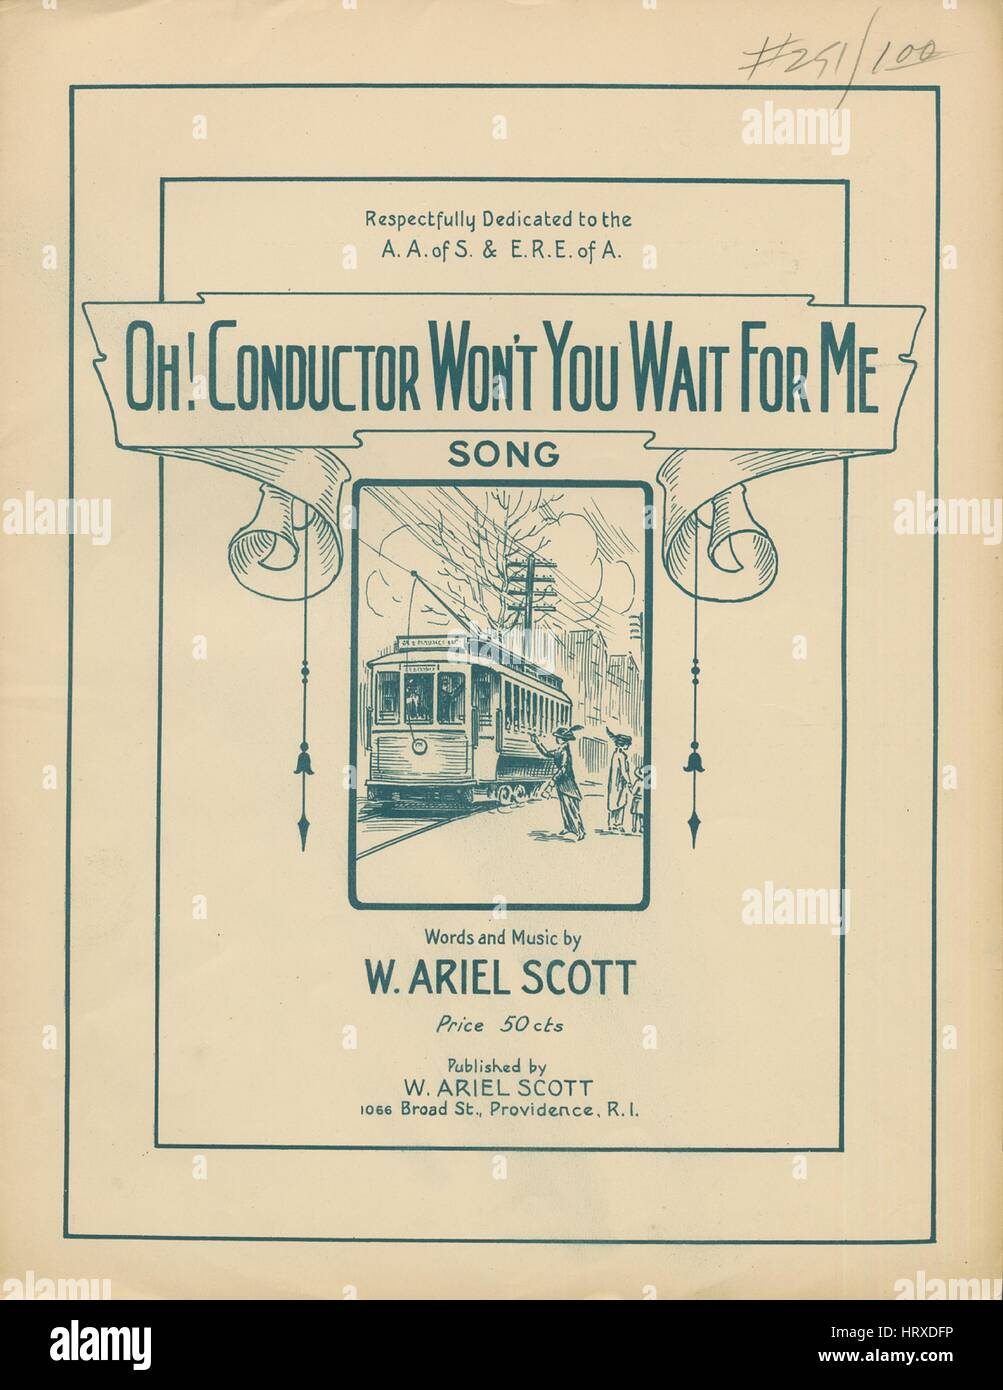 Sheet music cover image of the song 'Oh! Conductor Won't You Wait for Me? Song', with original authorship - Stock Image